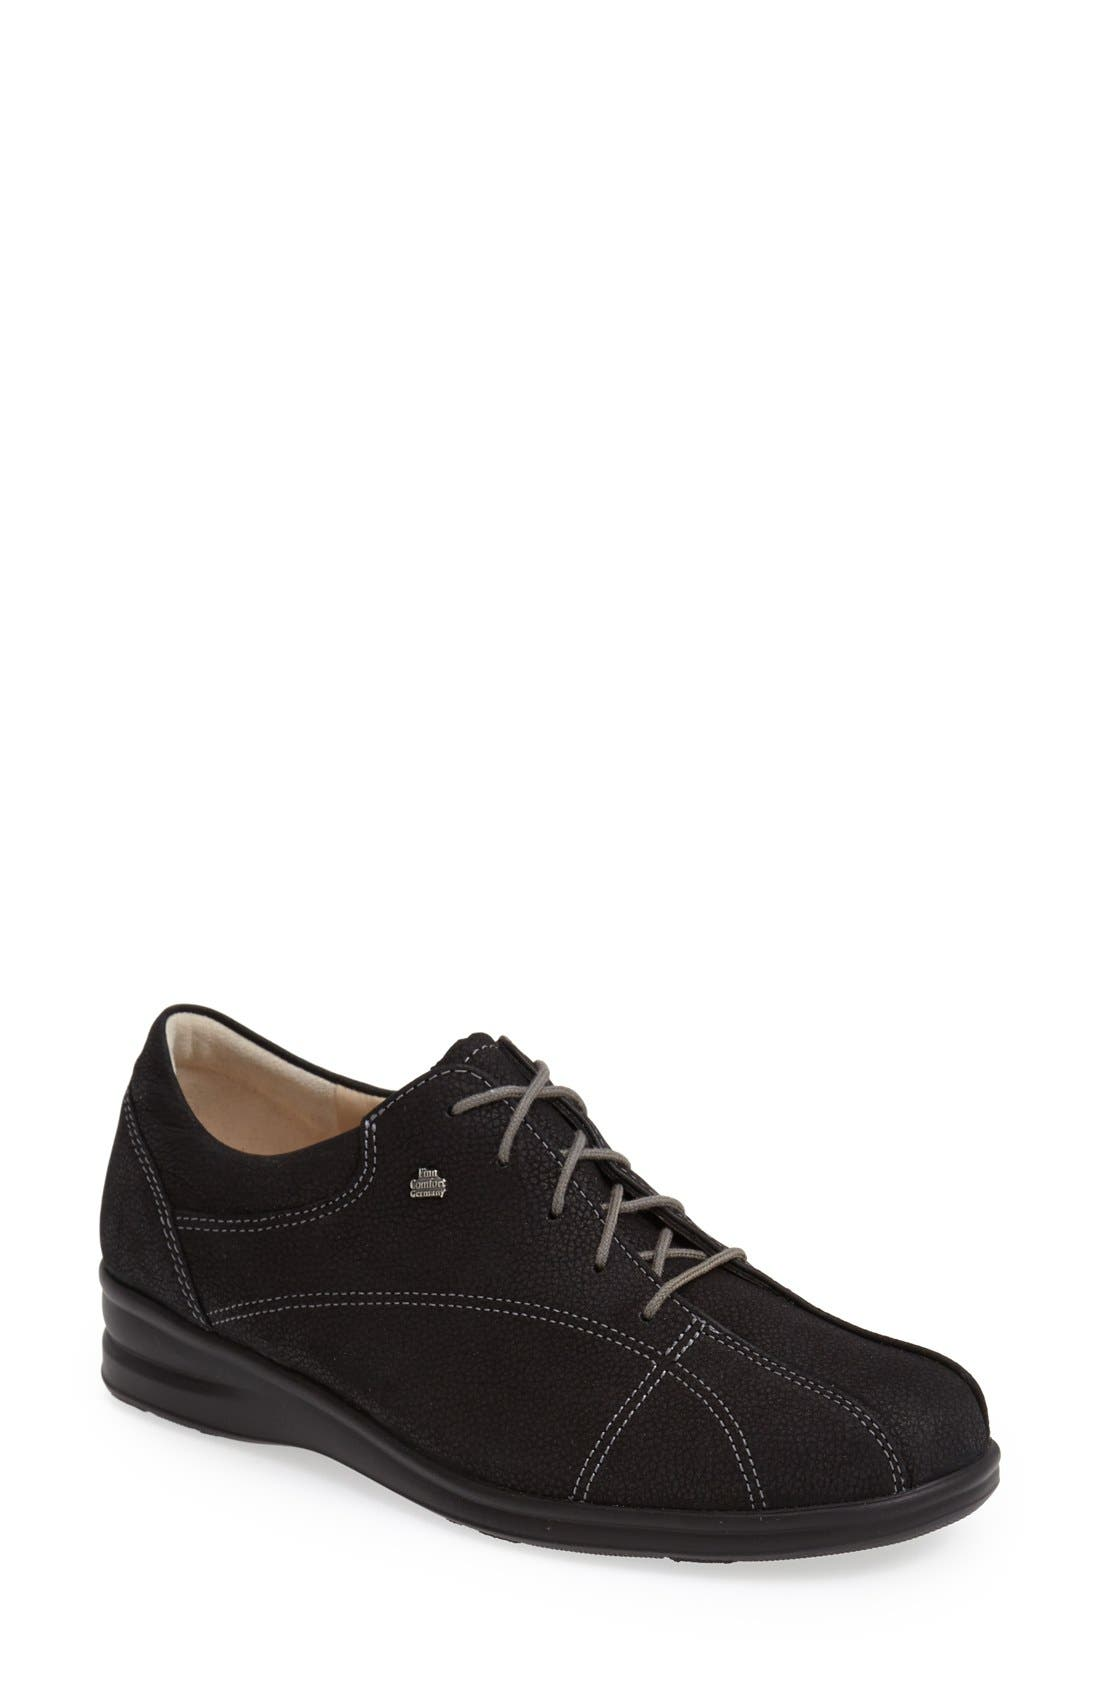 Finn Comfort 'Ariano' Leather Sneaker (Women)